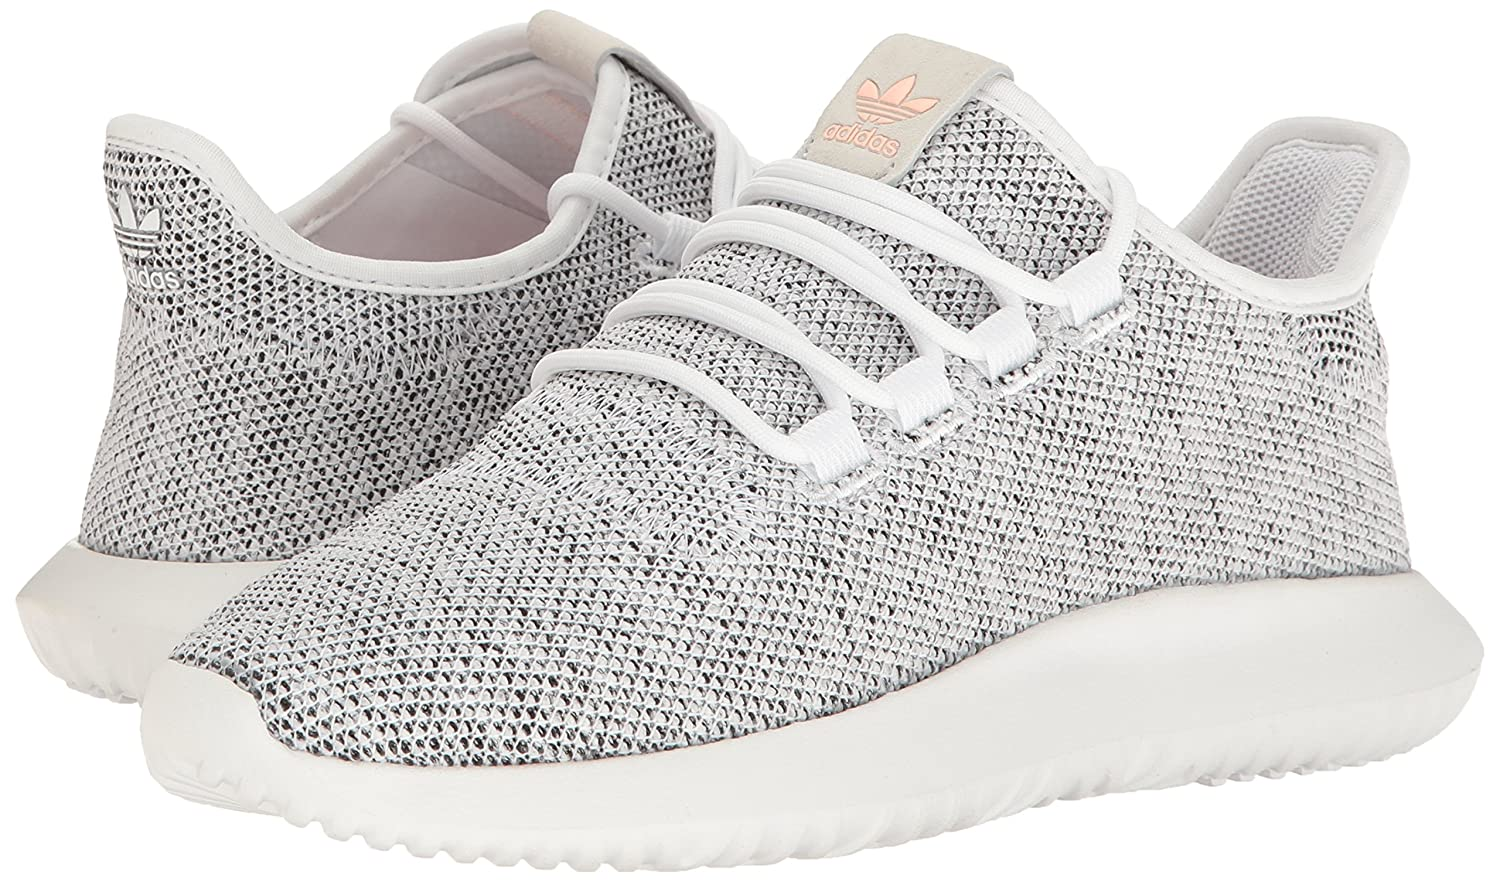 adidas Originals Women's Tubular B01LX0GGYS Shadow W Fashion Sneaker B01LX0GGYS Tubular 5.5 M US|White/Pearl Grey/Haze Coral fafb05